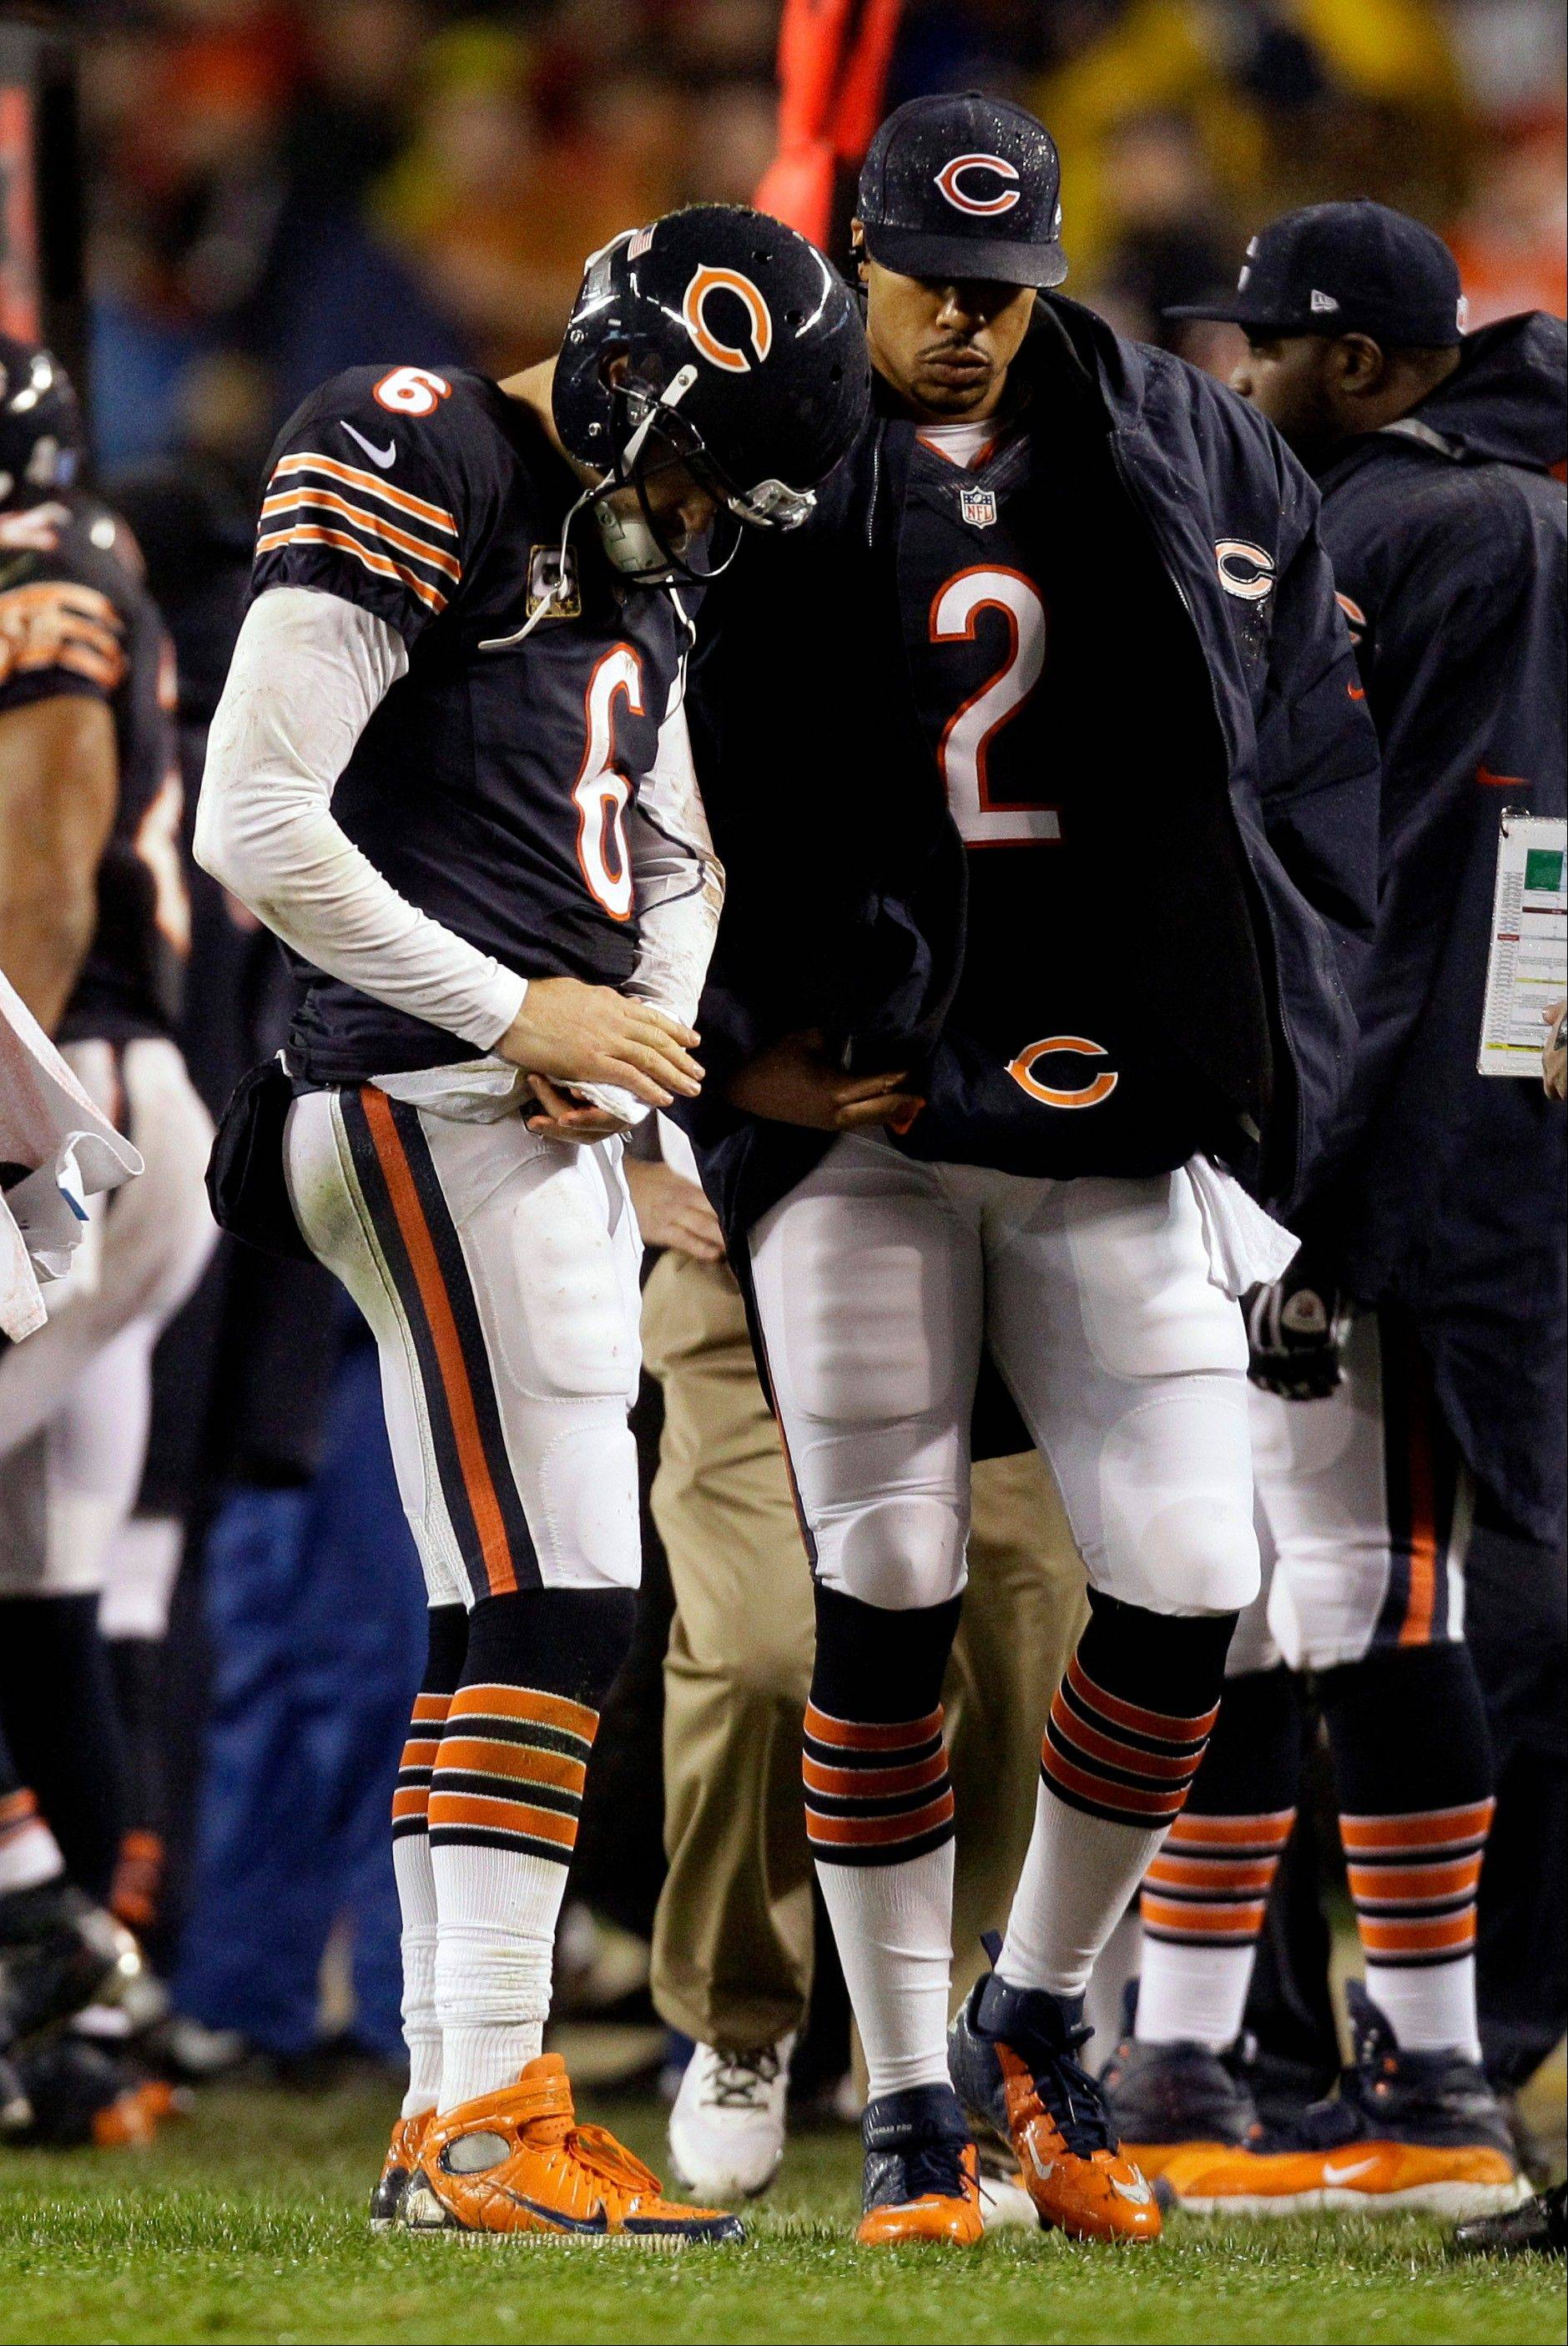 Bears would be smart to let Cutler sit